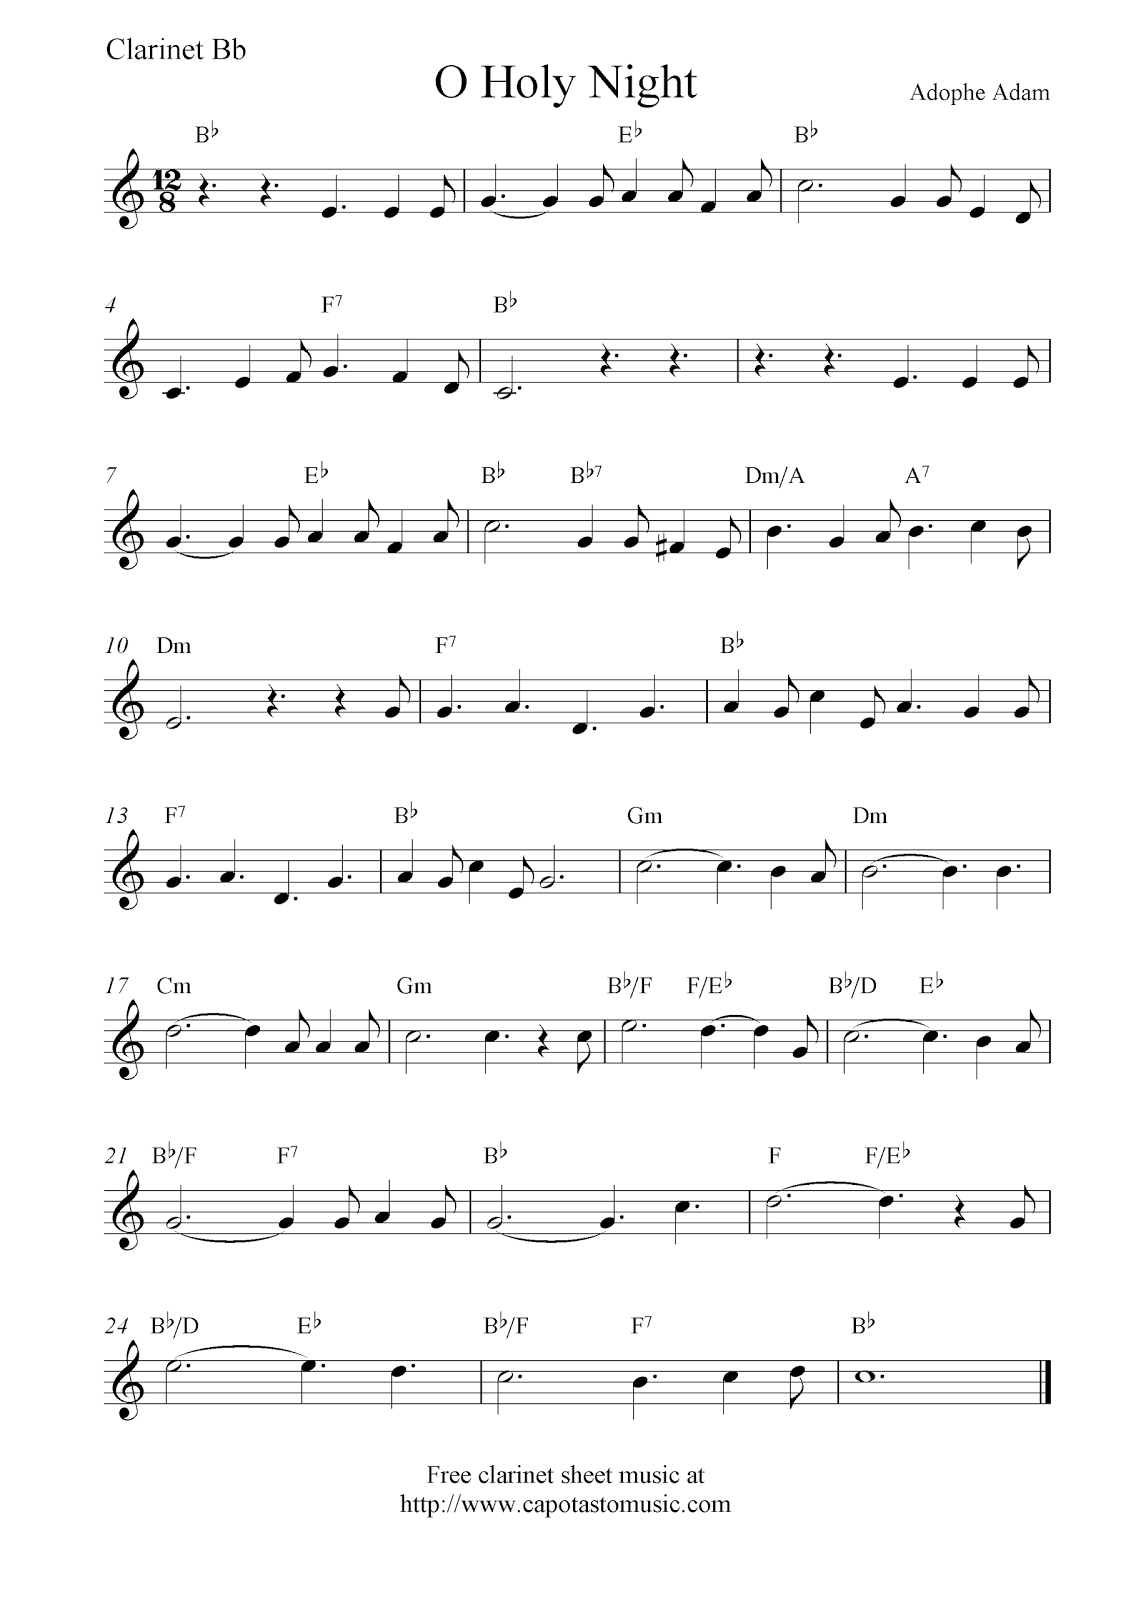 trade winds friend pdf song